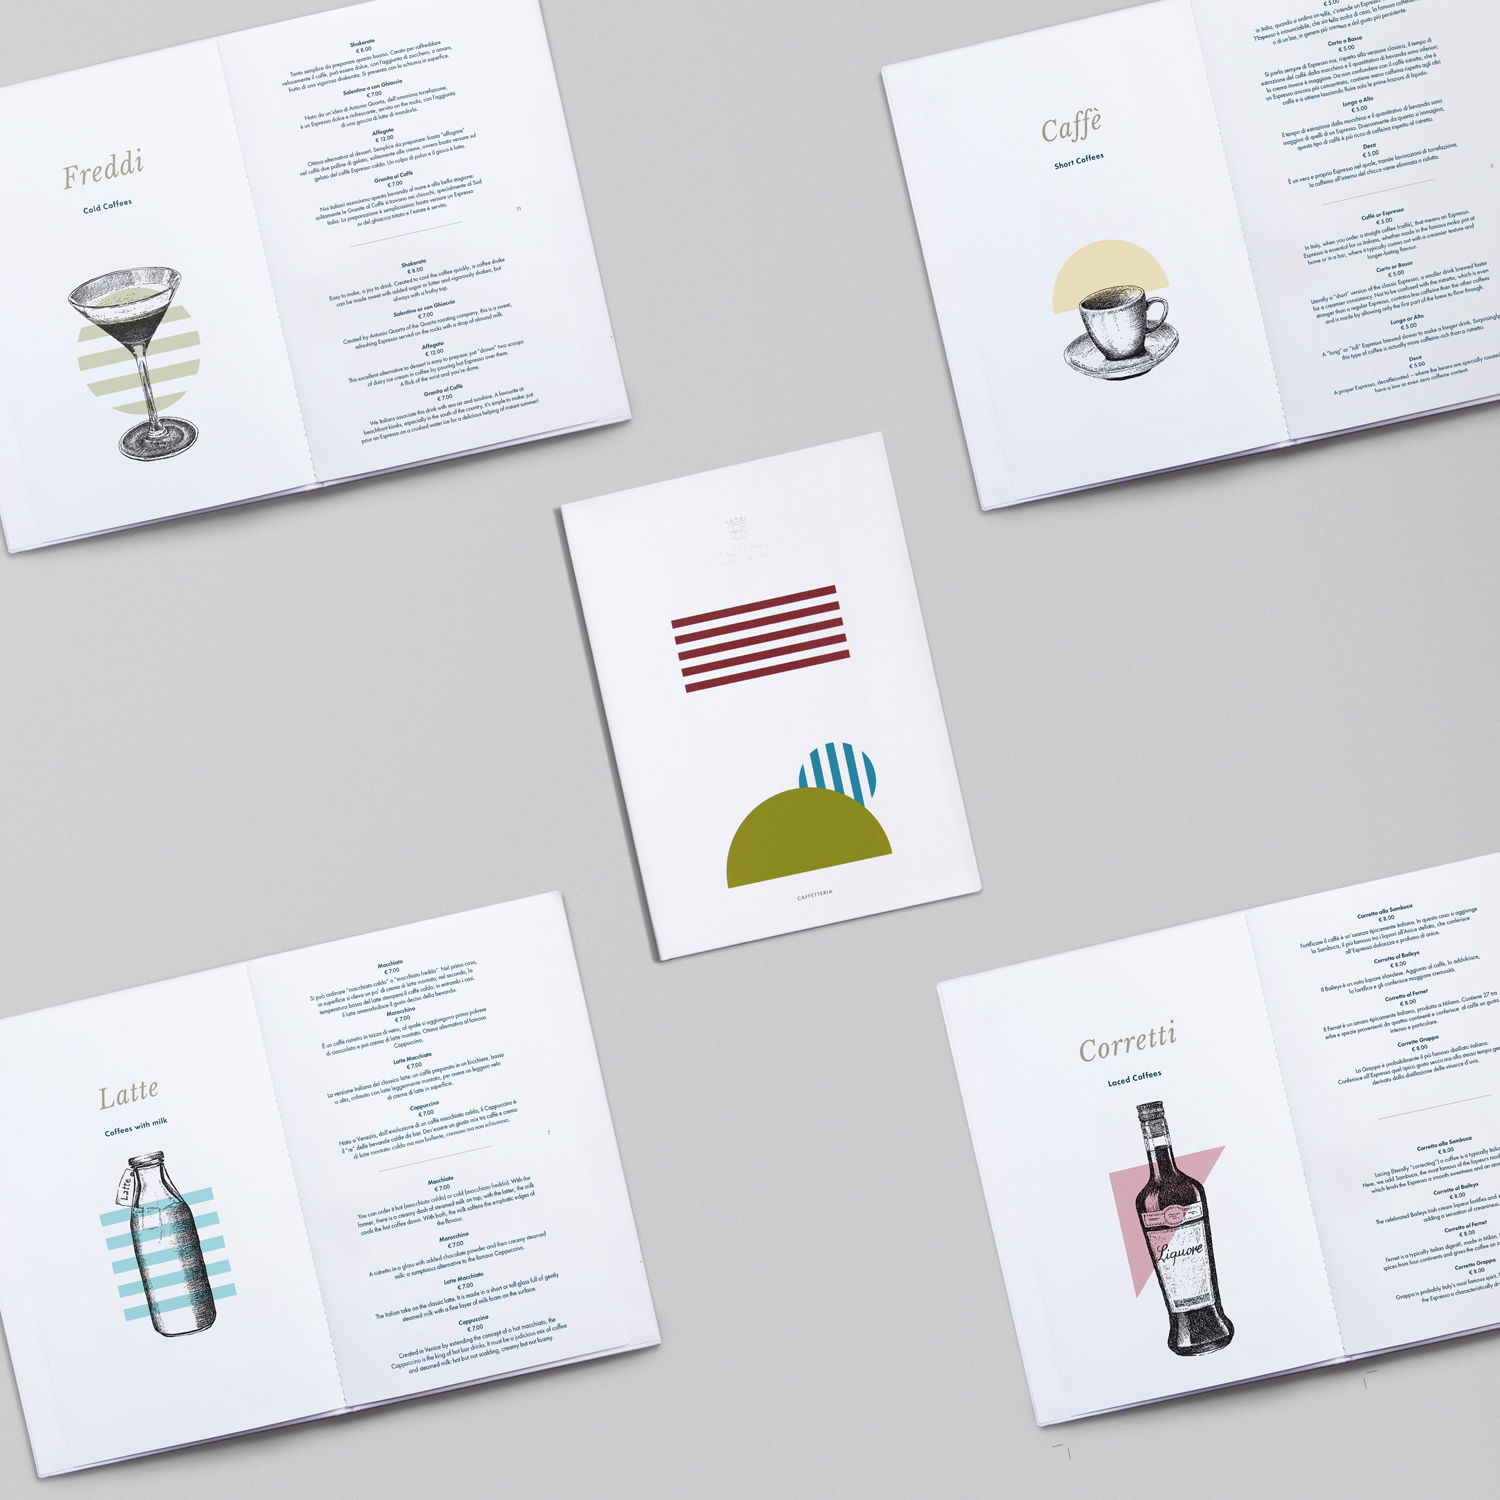 Baglioni hotels design italian style coffee menu visual